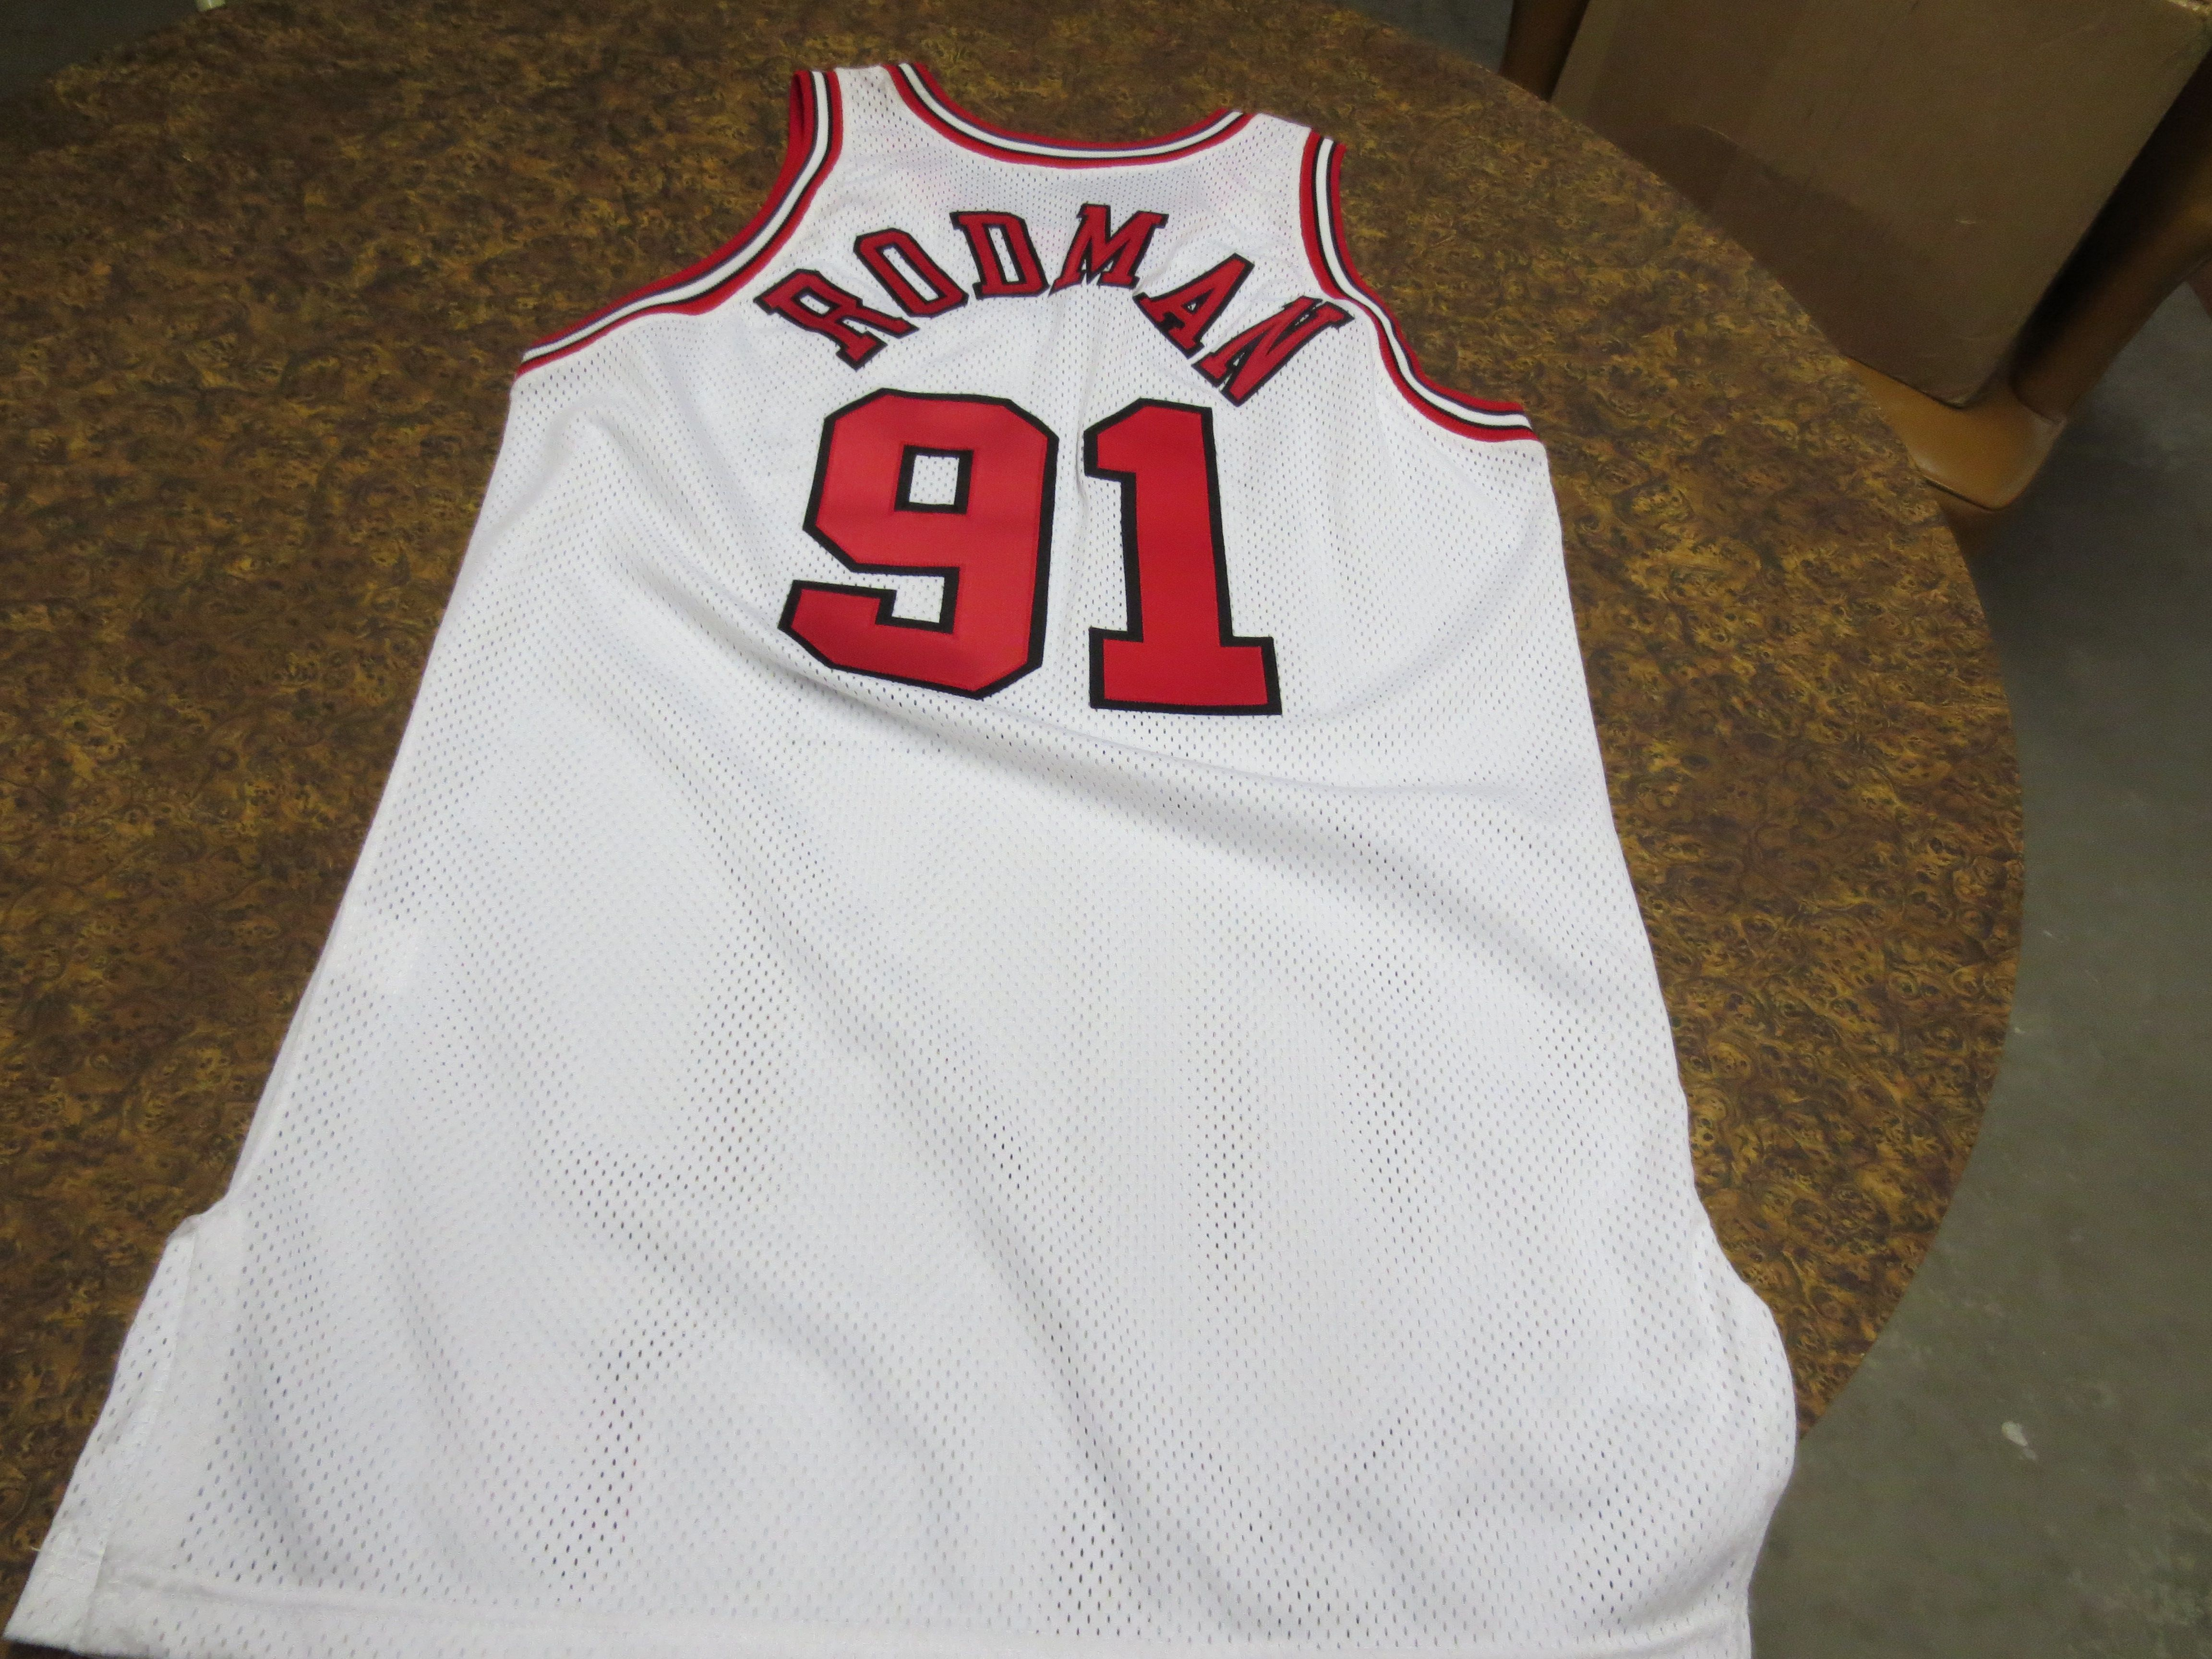 2b46ce78f47 ... 1995-96 Dennis Rodman Chicago Bulls Game Used Game Worn White Jersey  signed